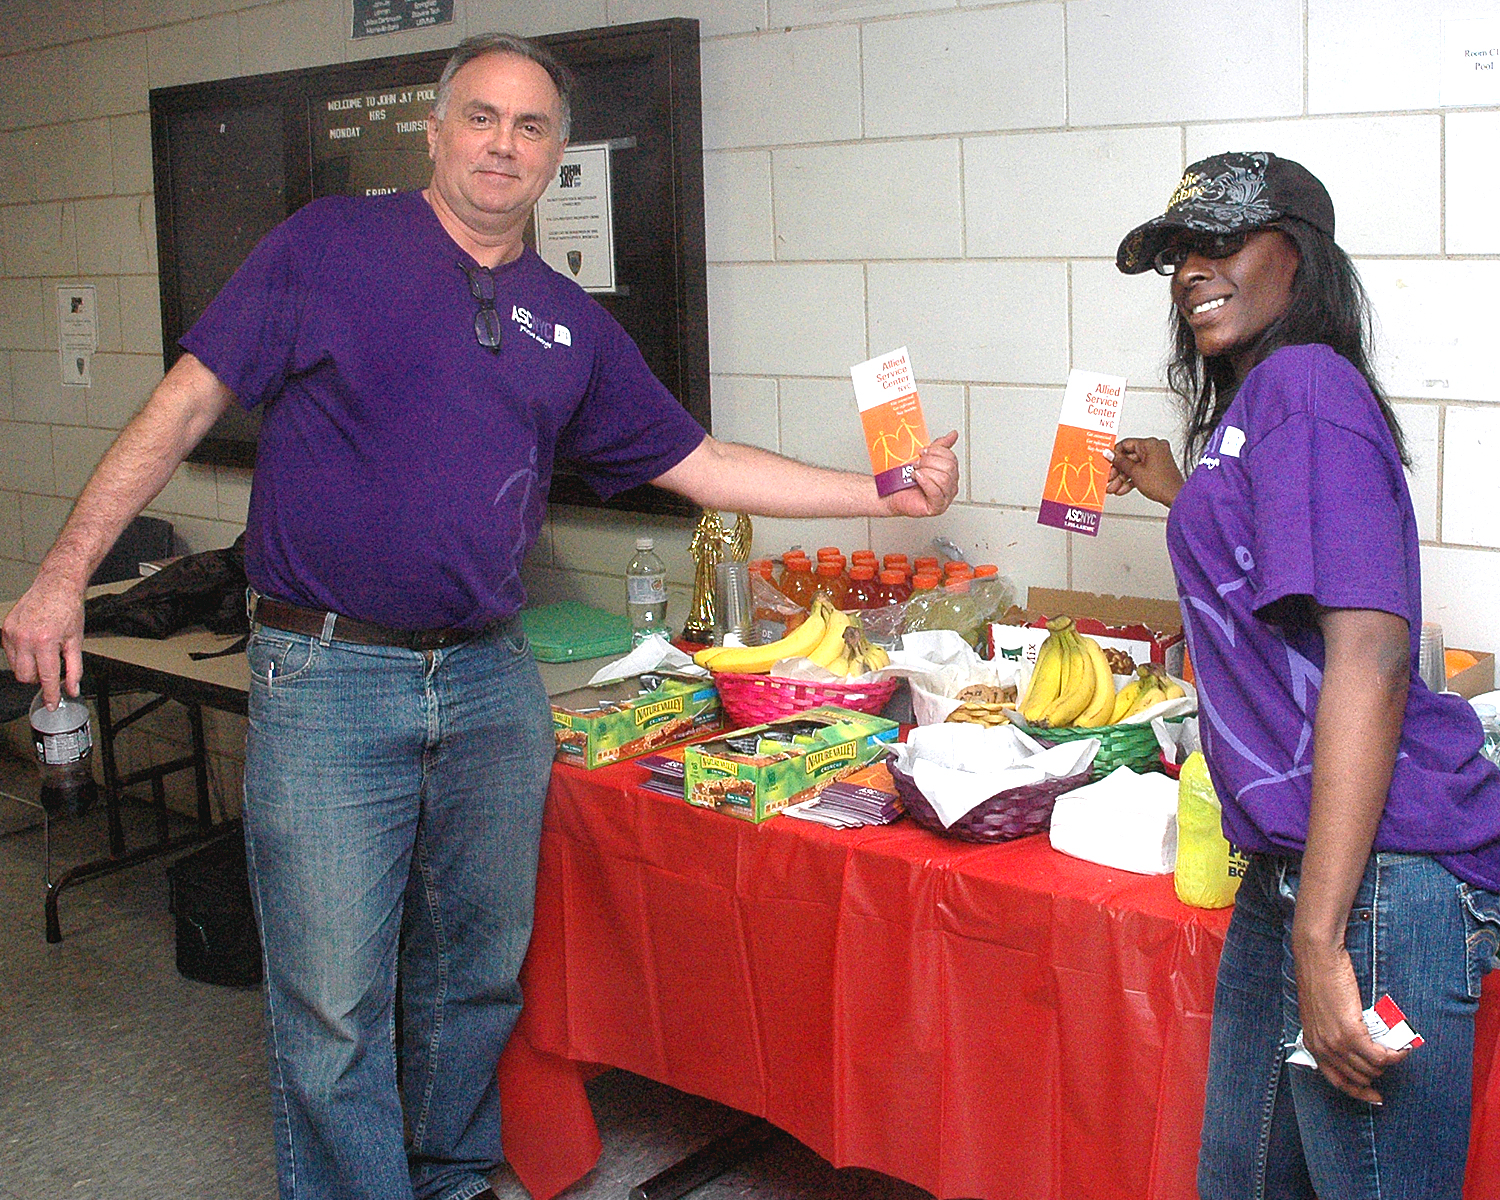 Conrad and Malika at the Outreach/Refreshment table